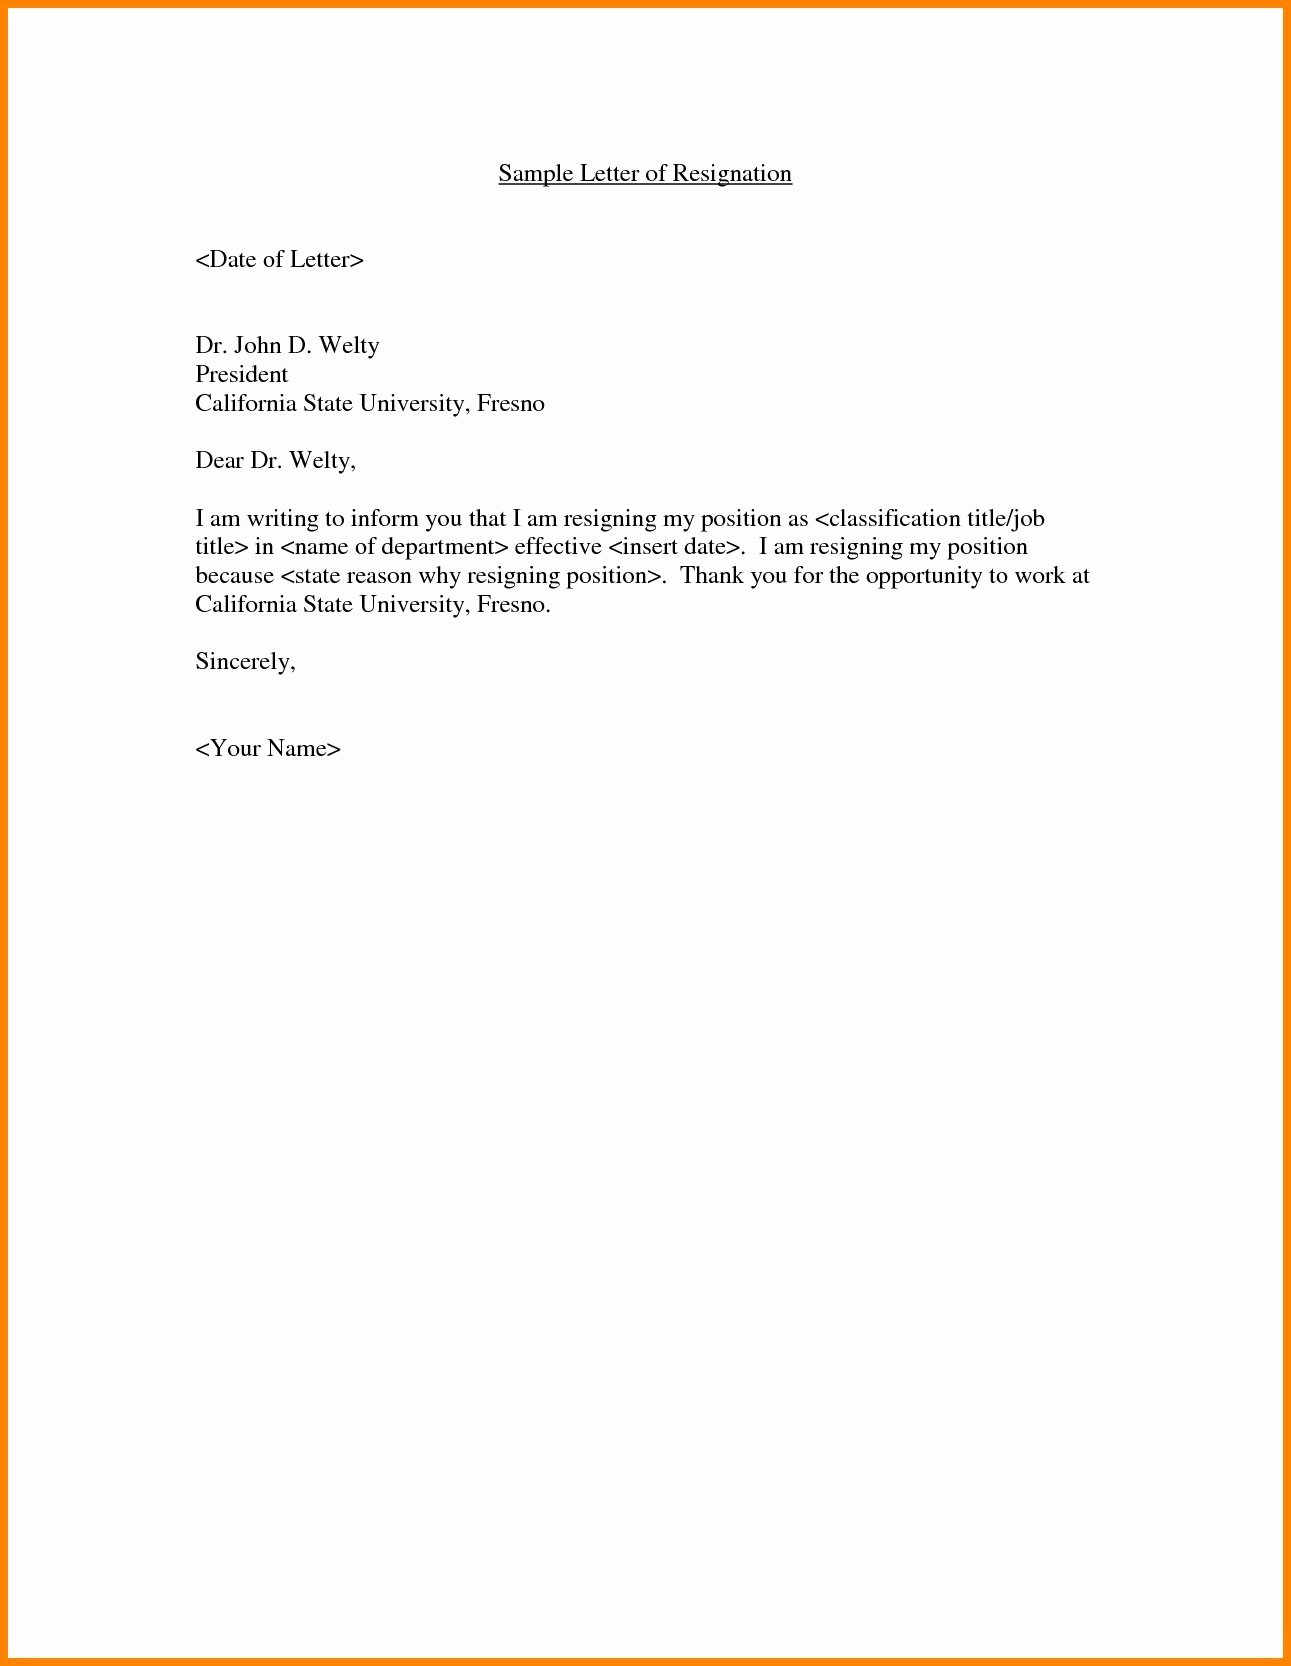 Letter format On Word Awesome Resignation Letter Samples In Word format New Standard